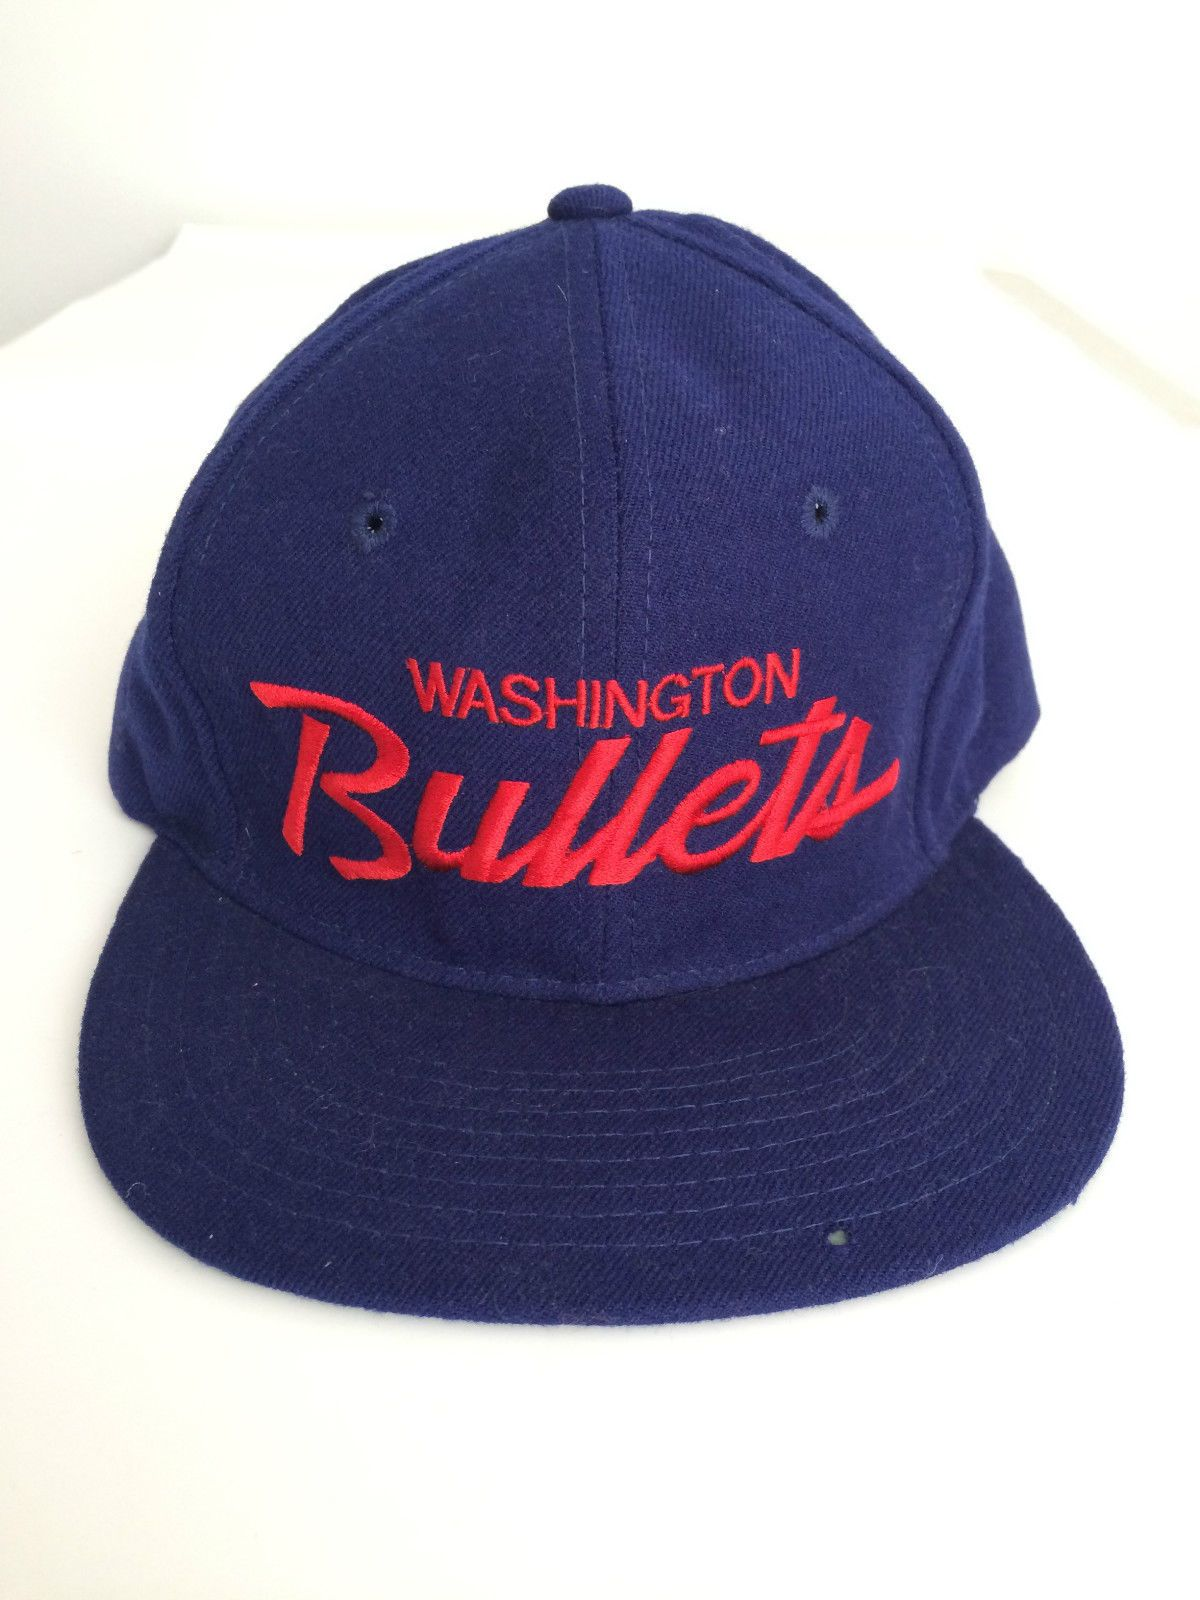 a814bd747a8 Washington Bullets Vintage Snapback Hat Cap Script Writing Over 20 Years  Old